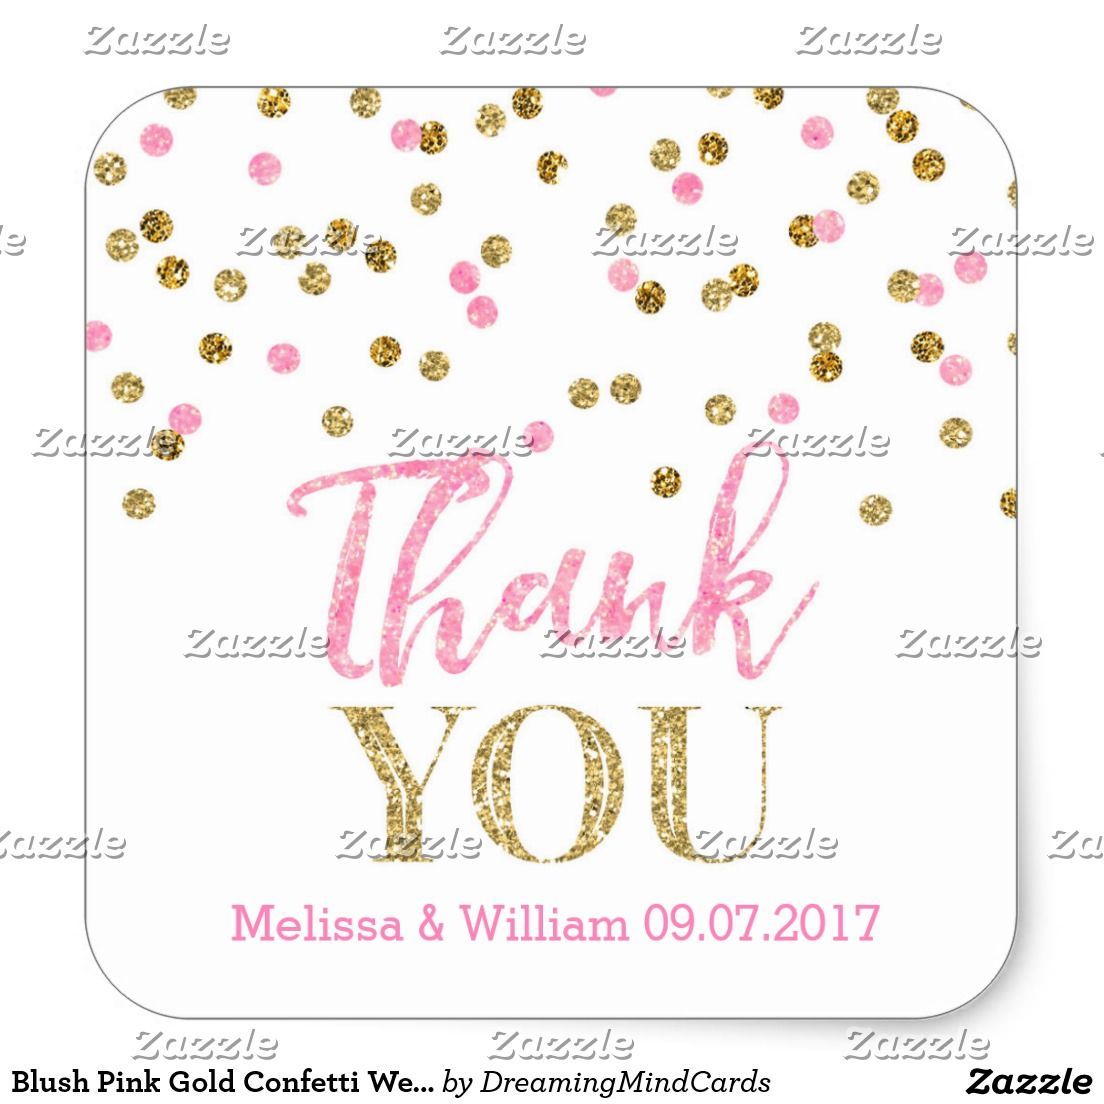 Blush Pink Gold Confetti Wedding Favor Tags | Wedding, Pink and Note